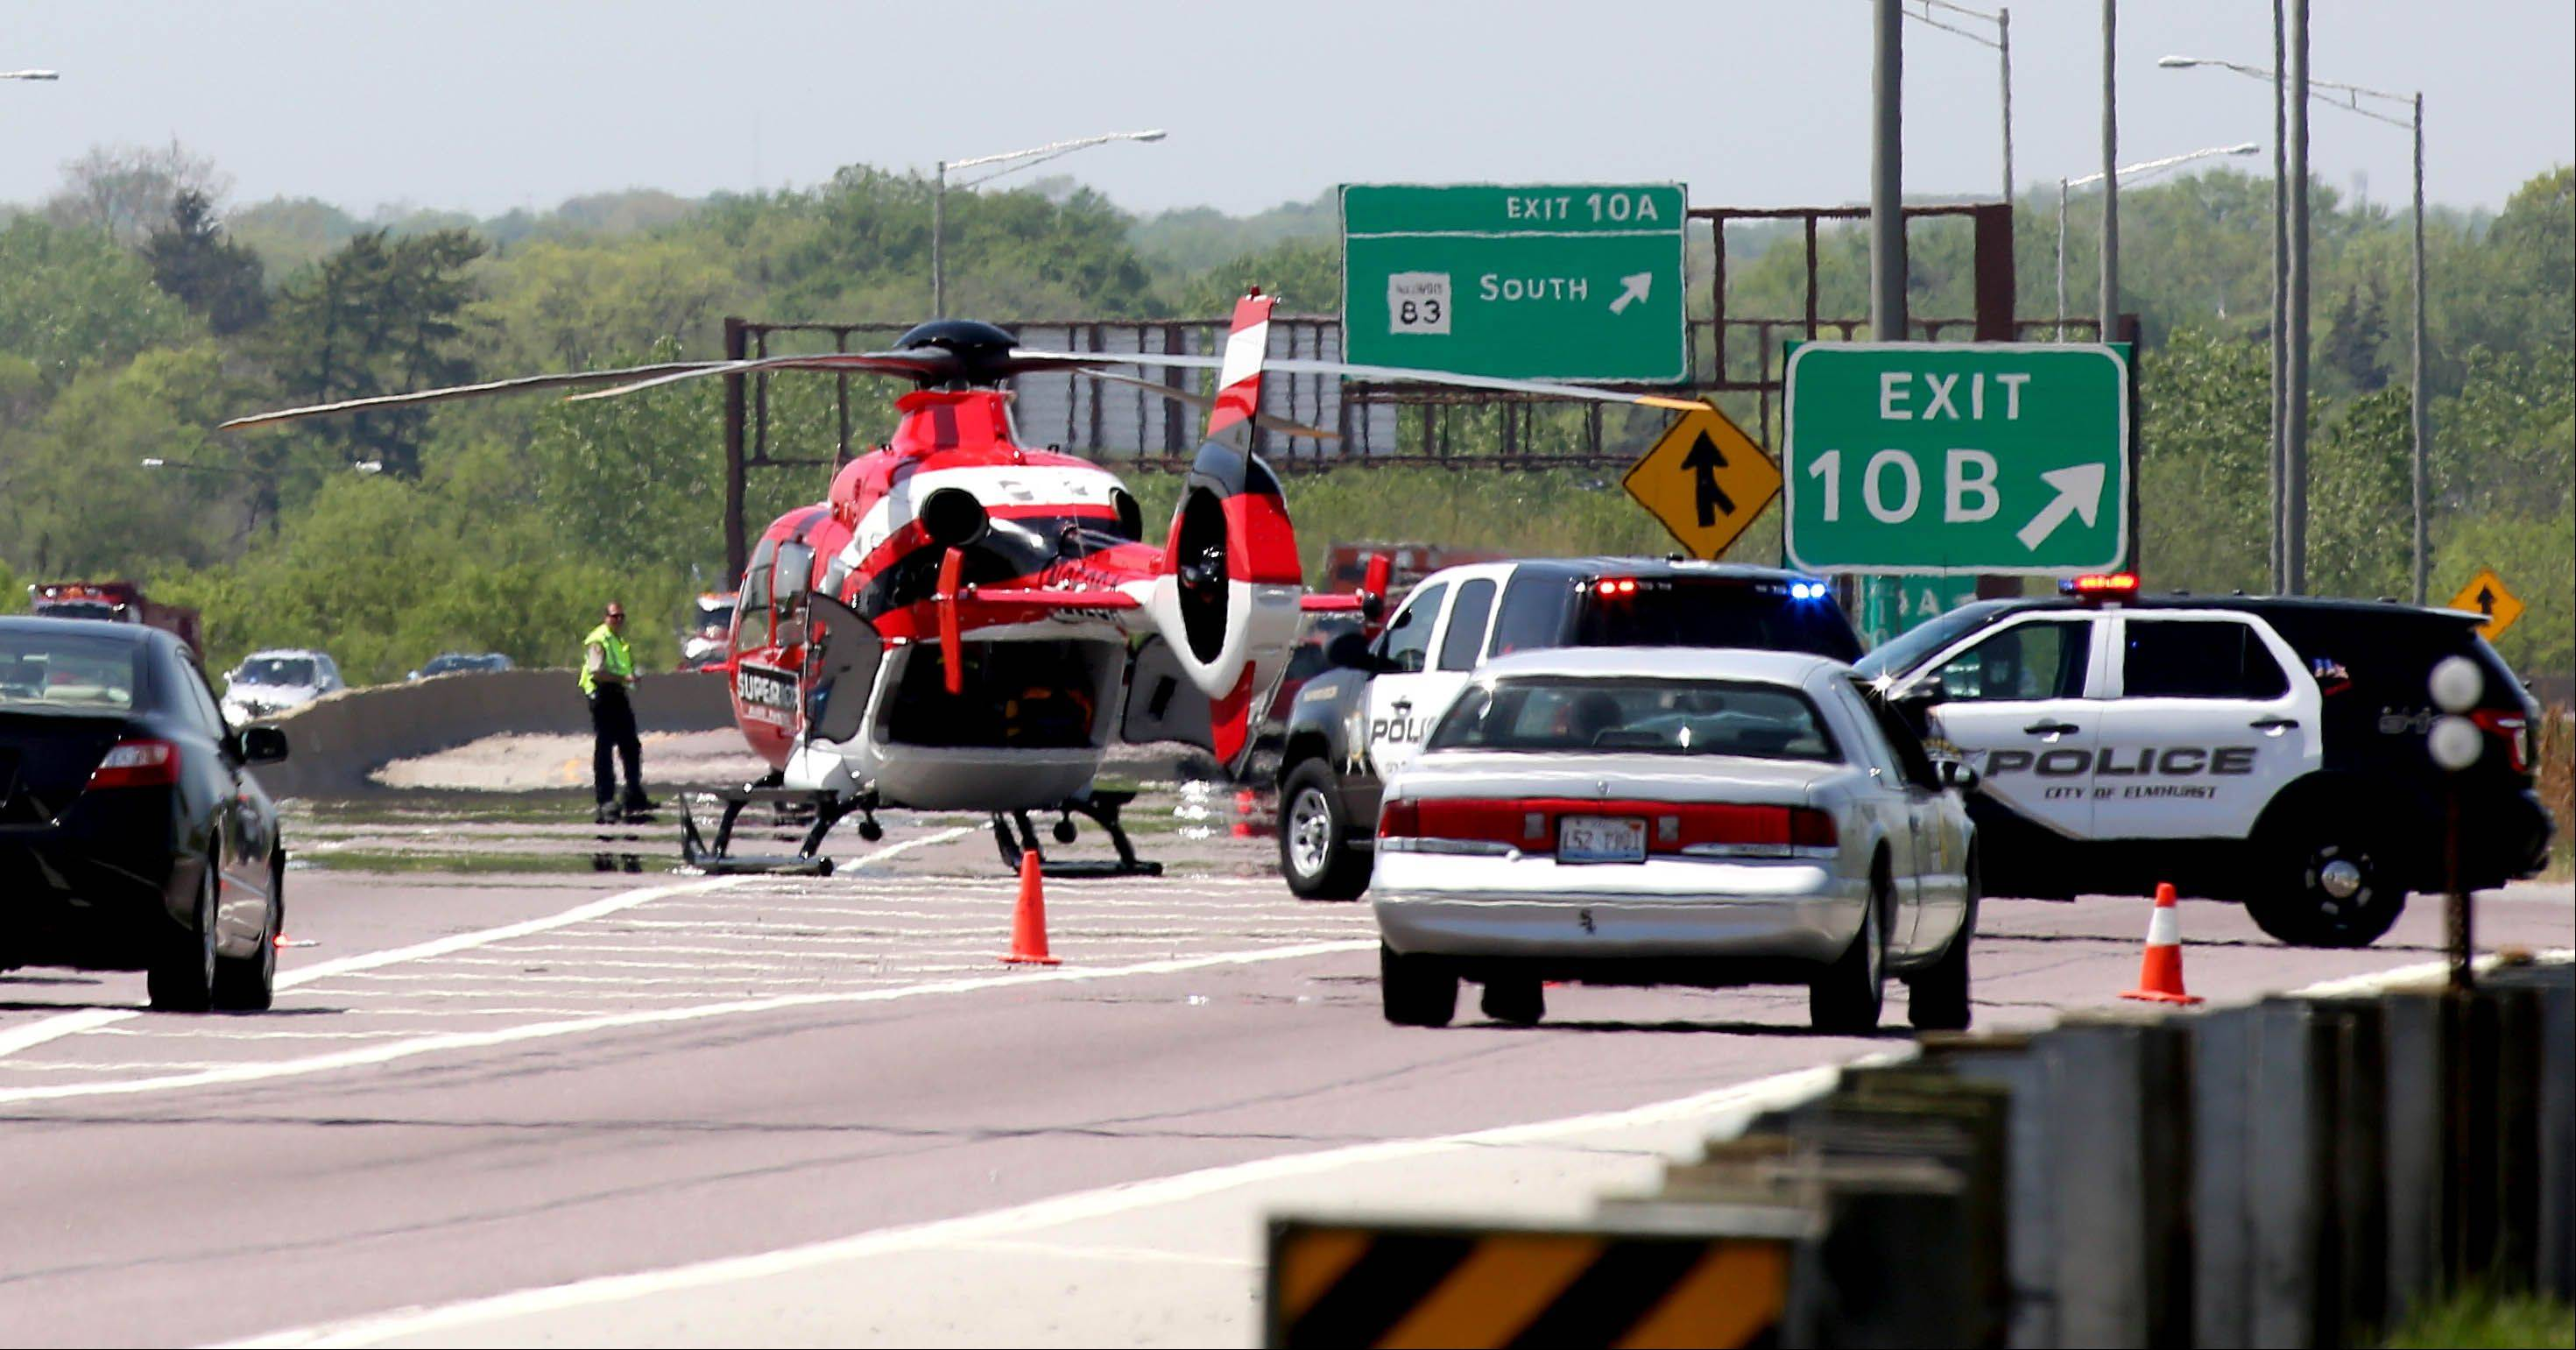 A medic helicopter landed on I-290 at Rt. 83 in Bensenville on Wednesday after a truck overturned on the exit ramp.